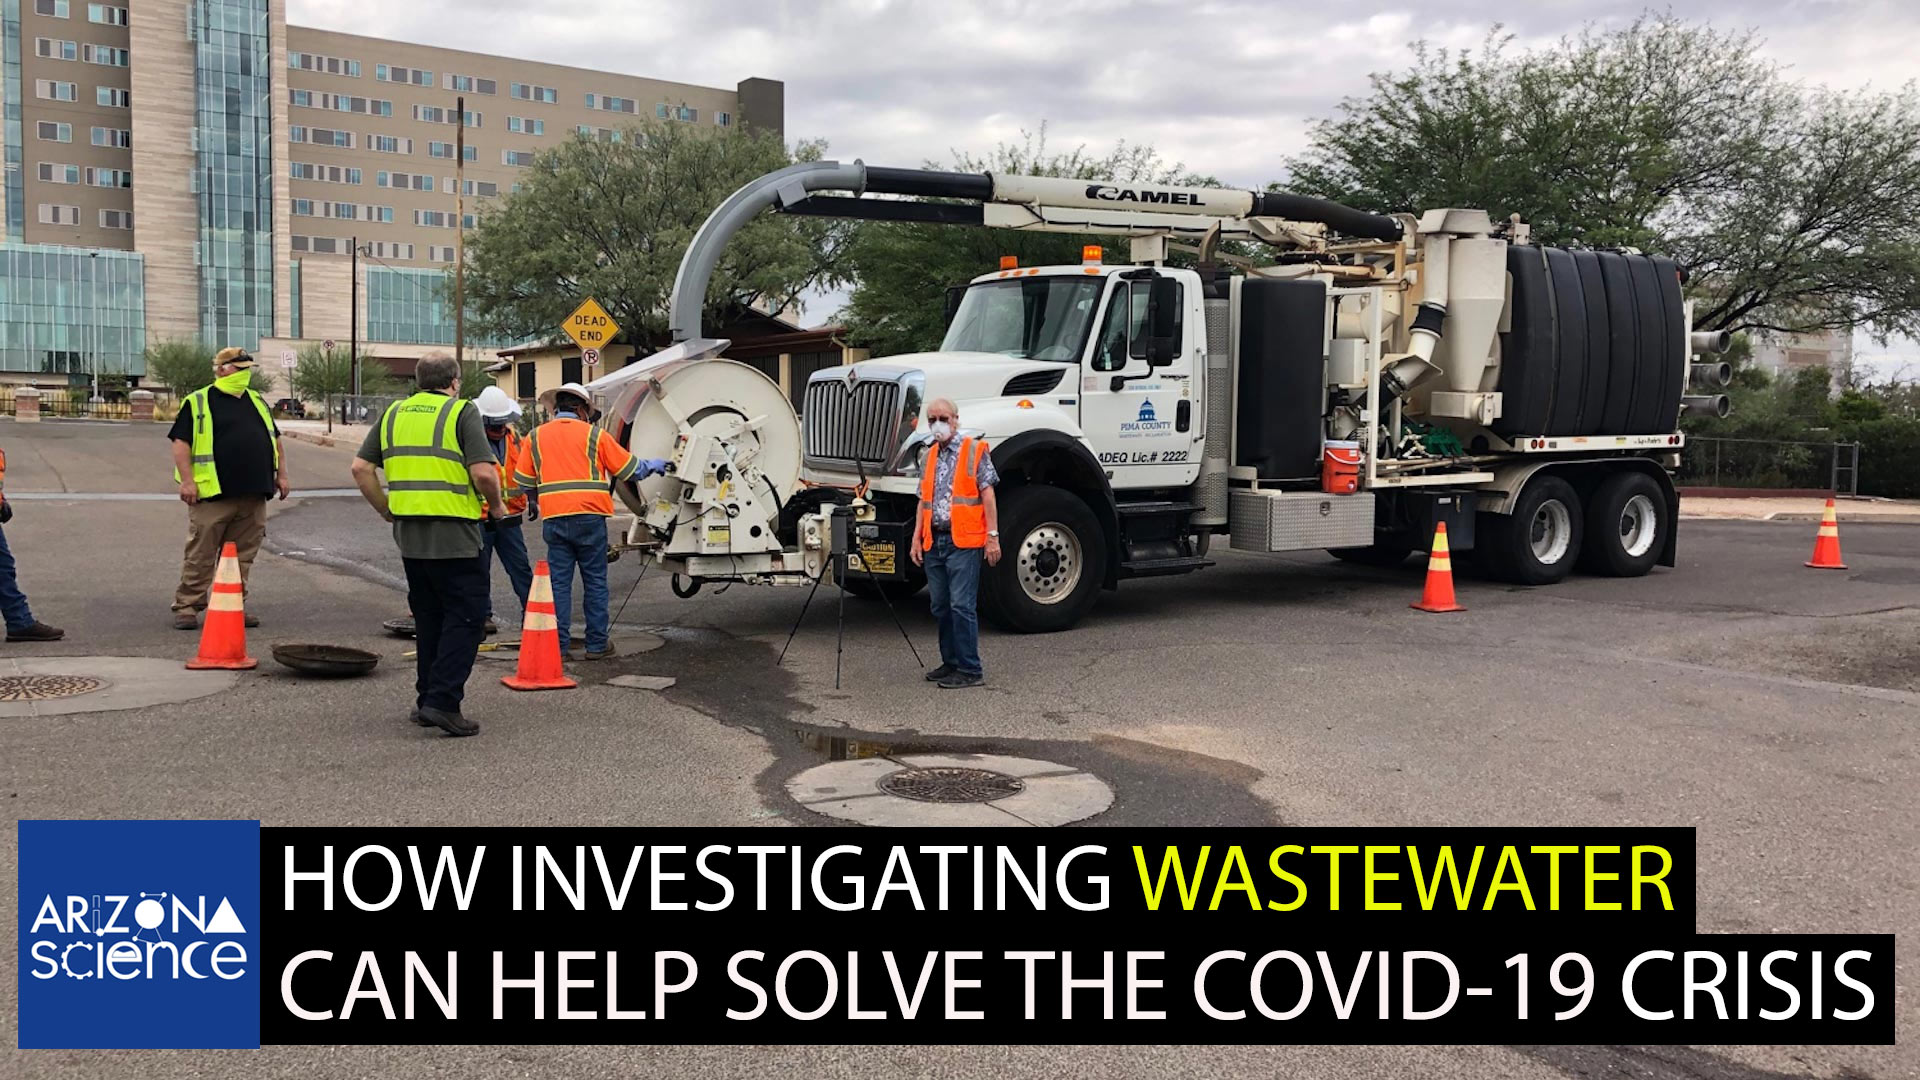 Pima County waste technicians assist UA researchers searching for coronavirus in Tucson sewers.